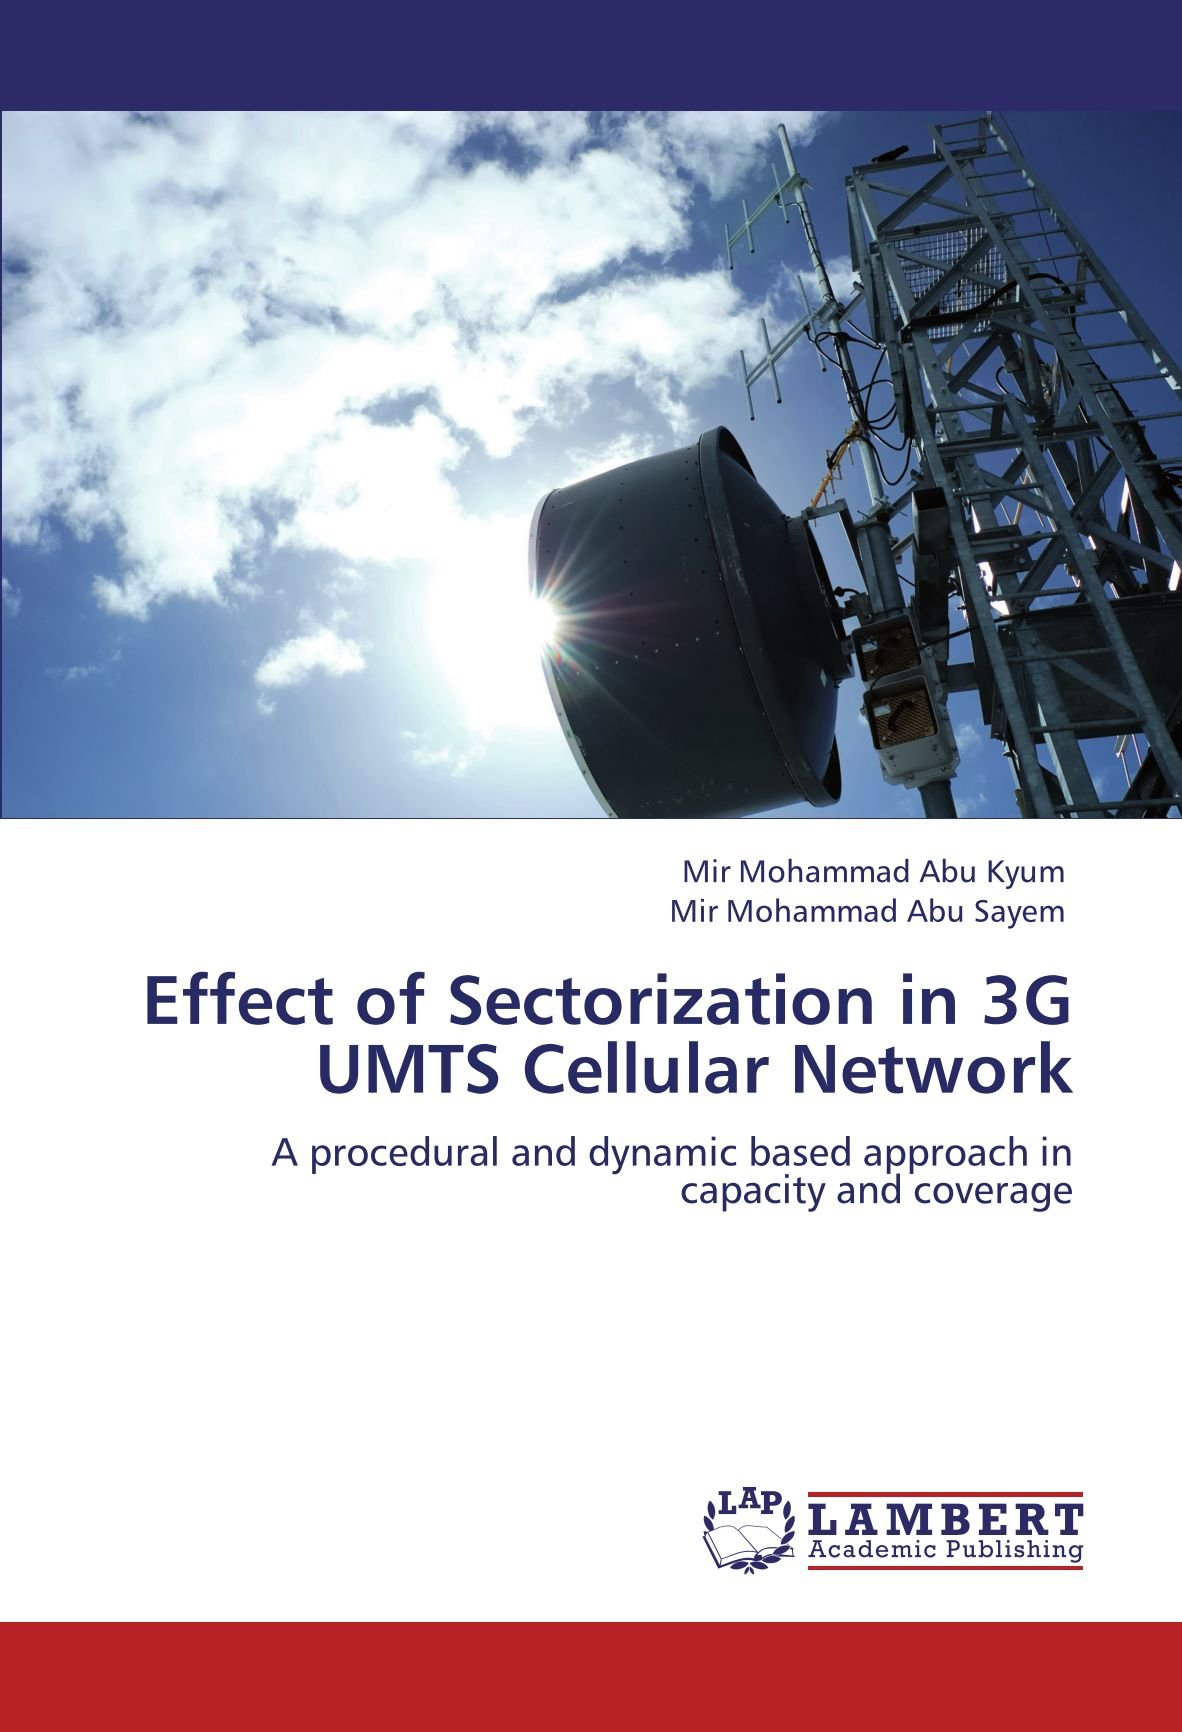 Effect of Sectorization in 3G UMTS Cellular Network: A procedural